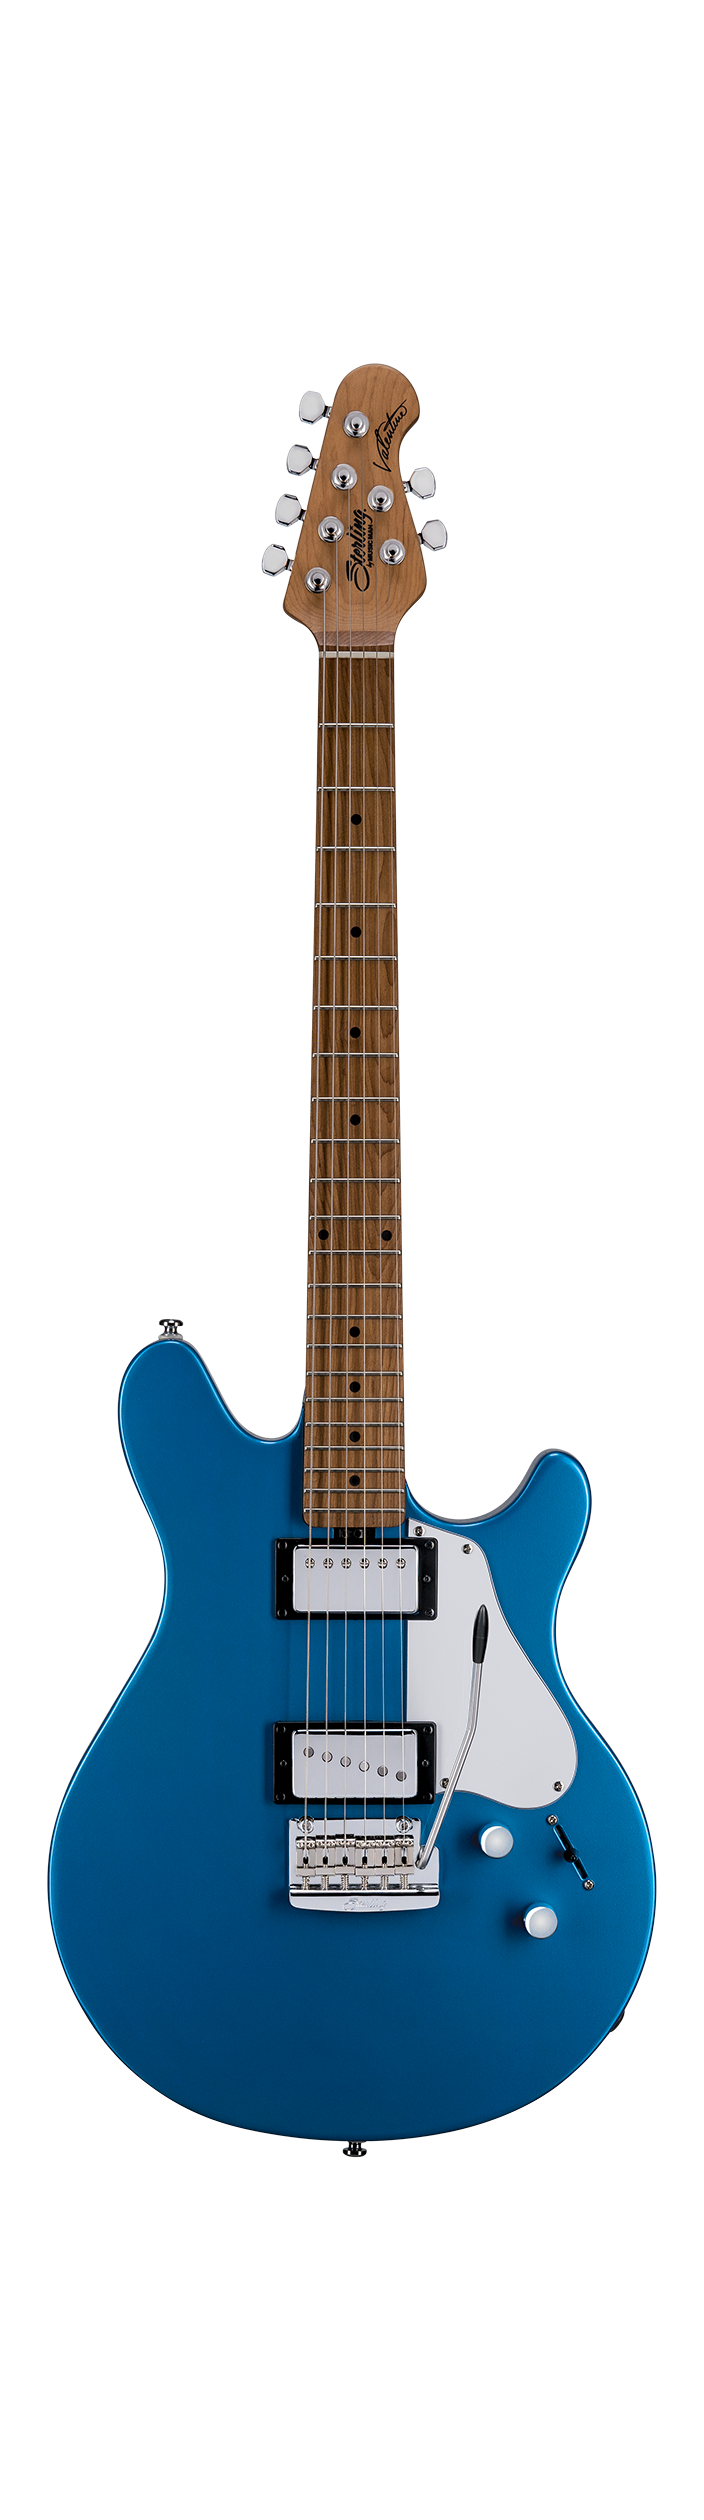 Sterling by Music Man James Valentine Toluca Lake Blue - Regent Sounds